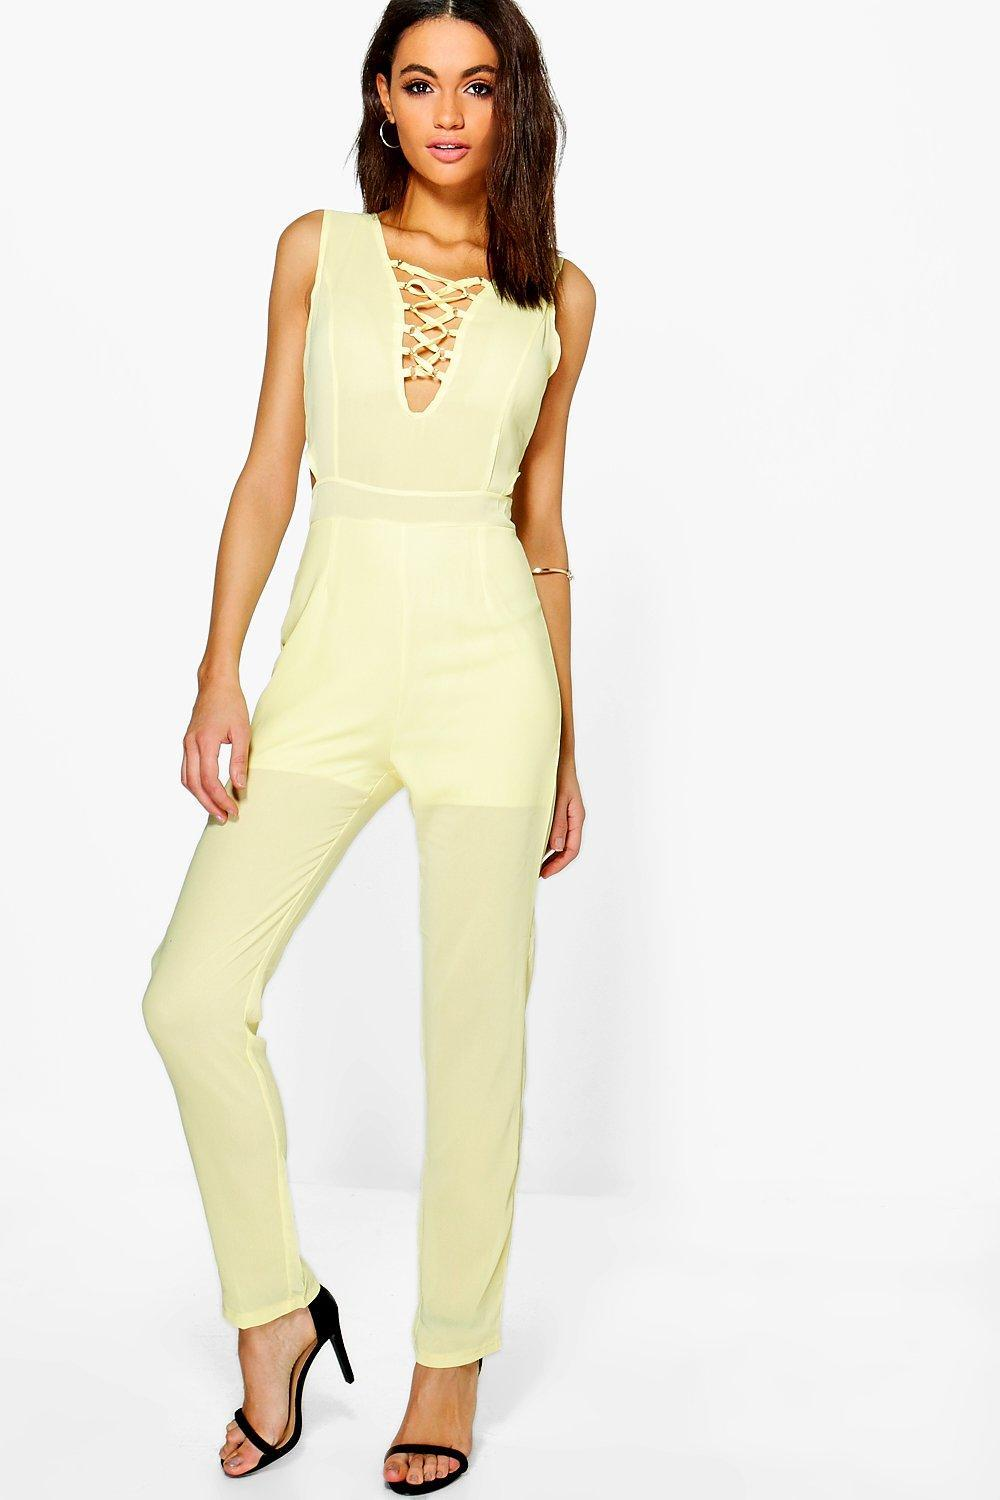 Boohoo Gemma Lace Up Front Chiffon Jumpsuit in Yellow | Lyst